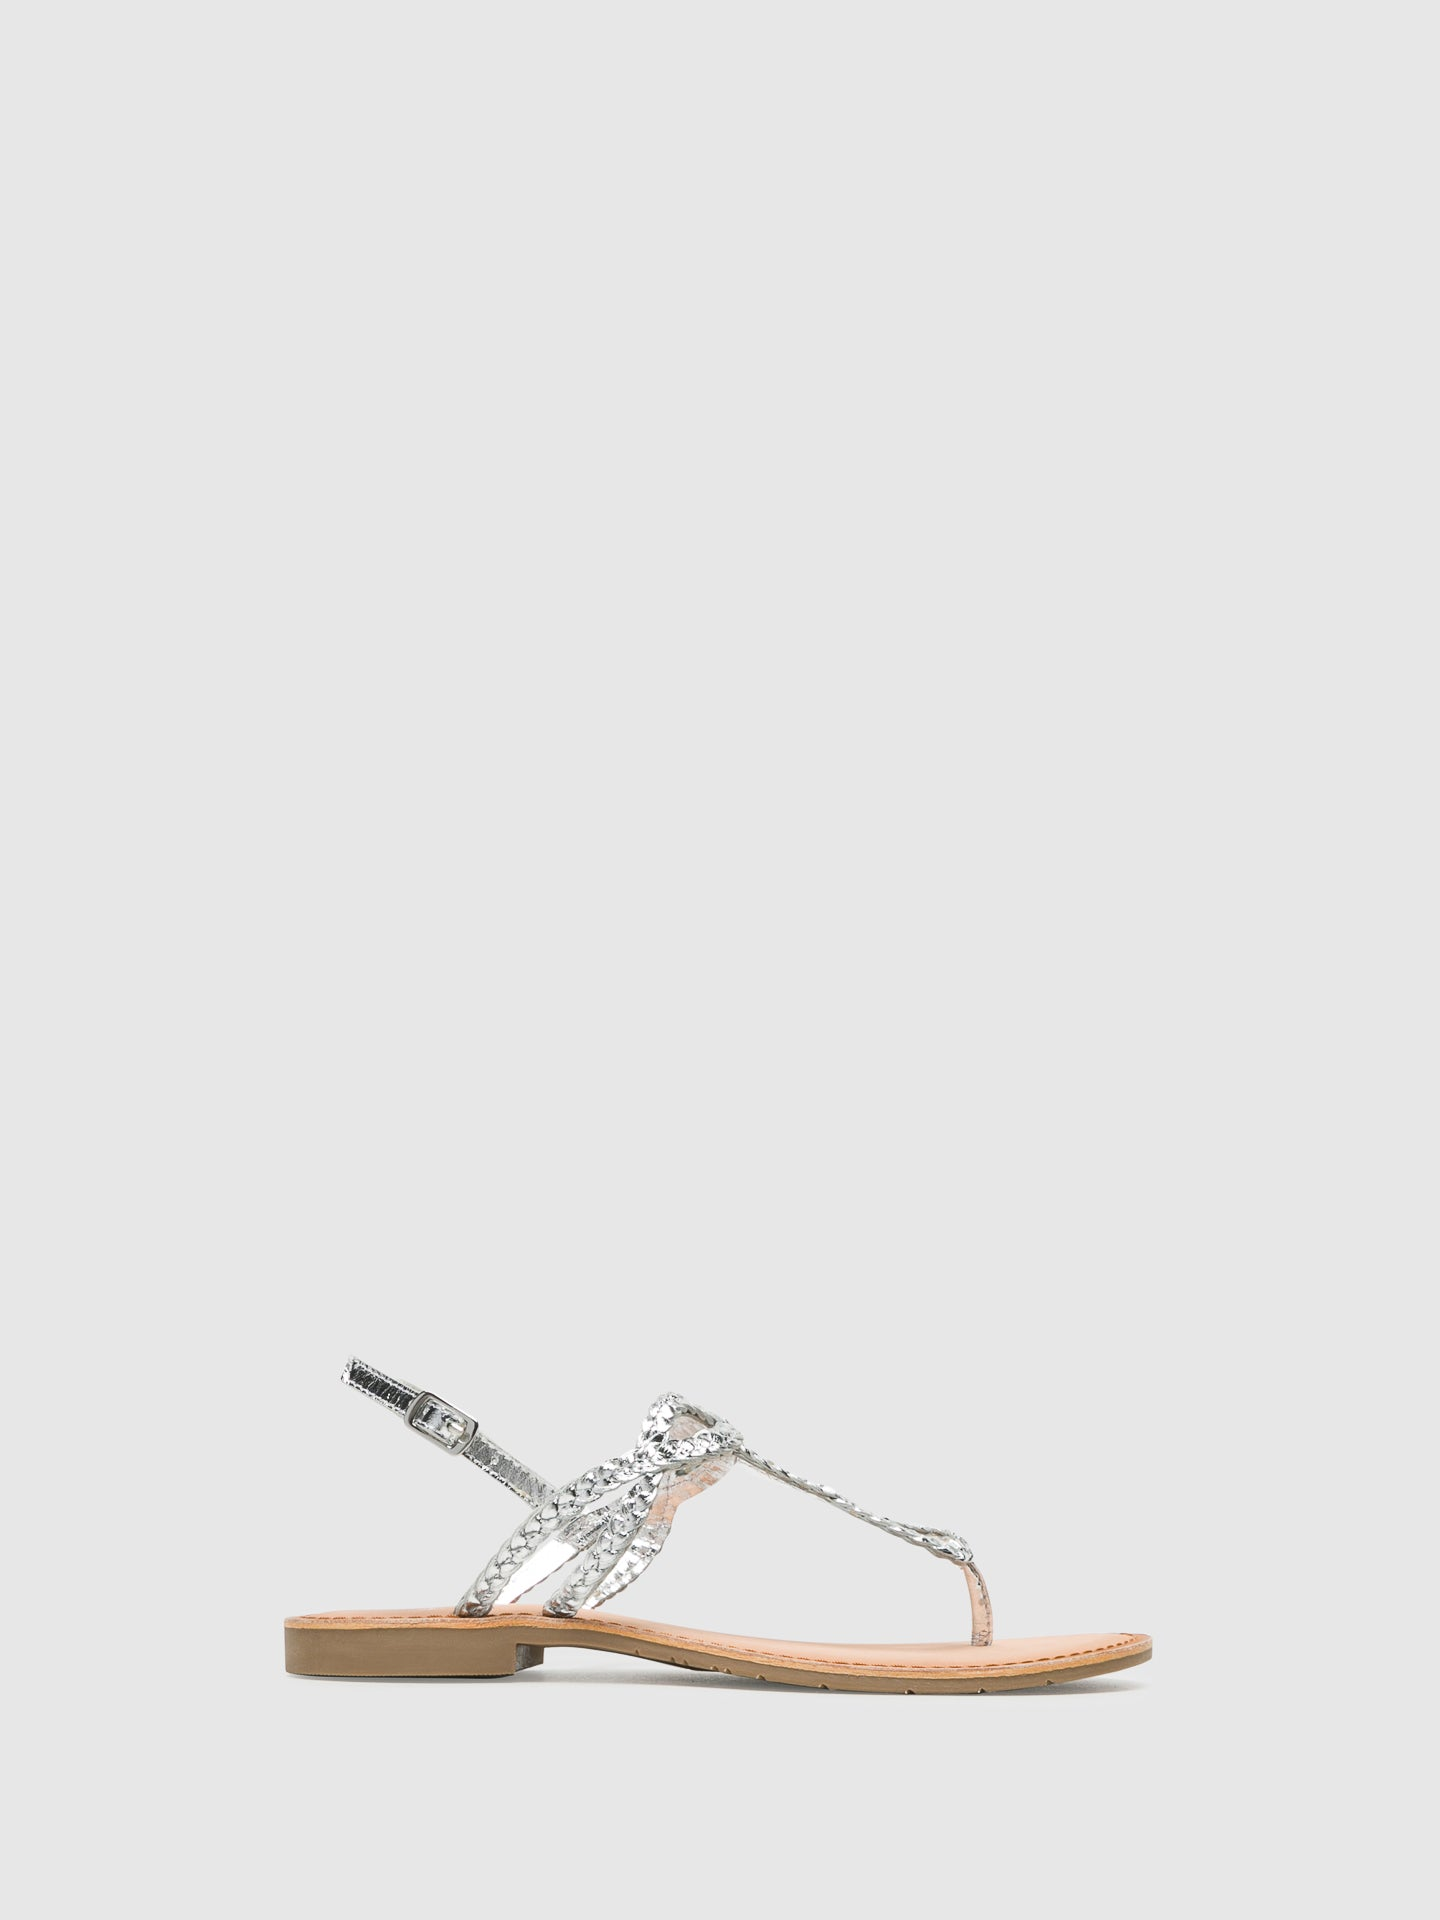 Bos&Co Silver Buckle Sandals